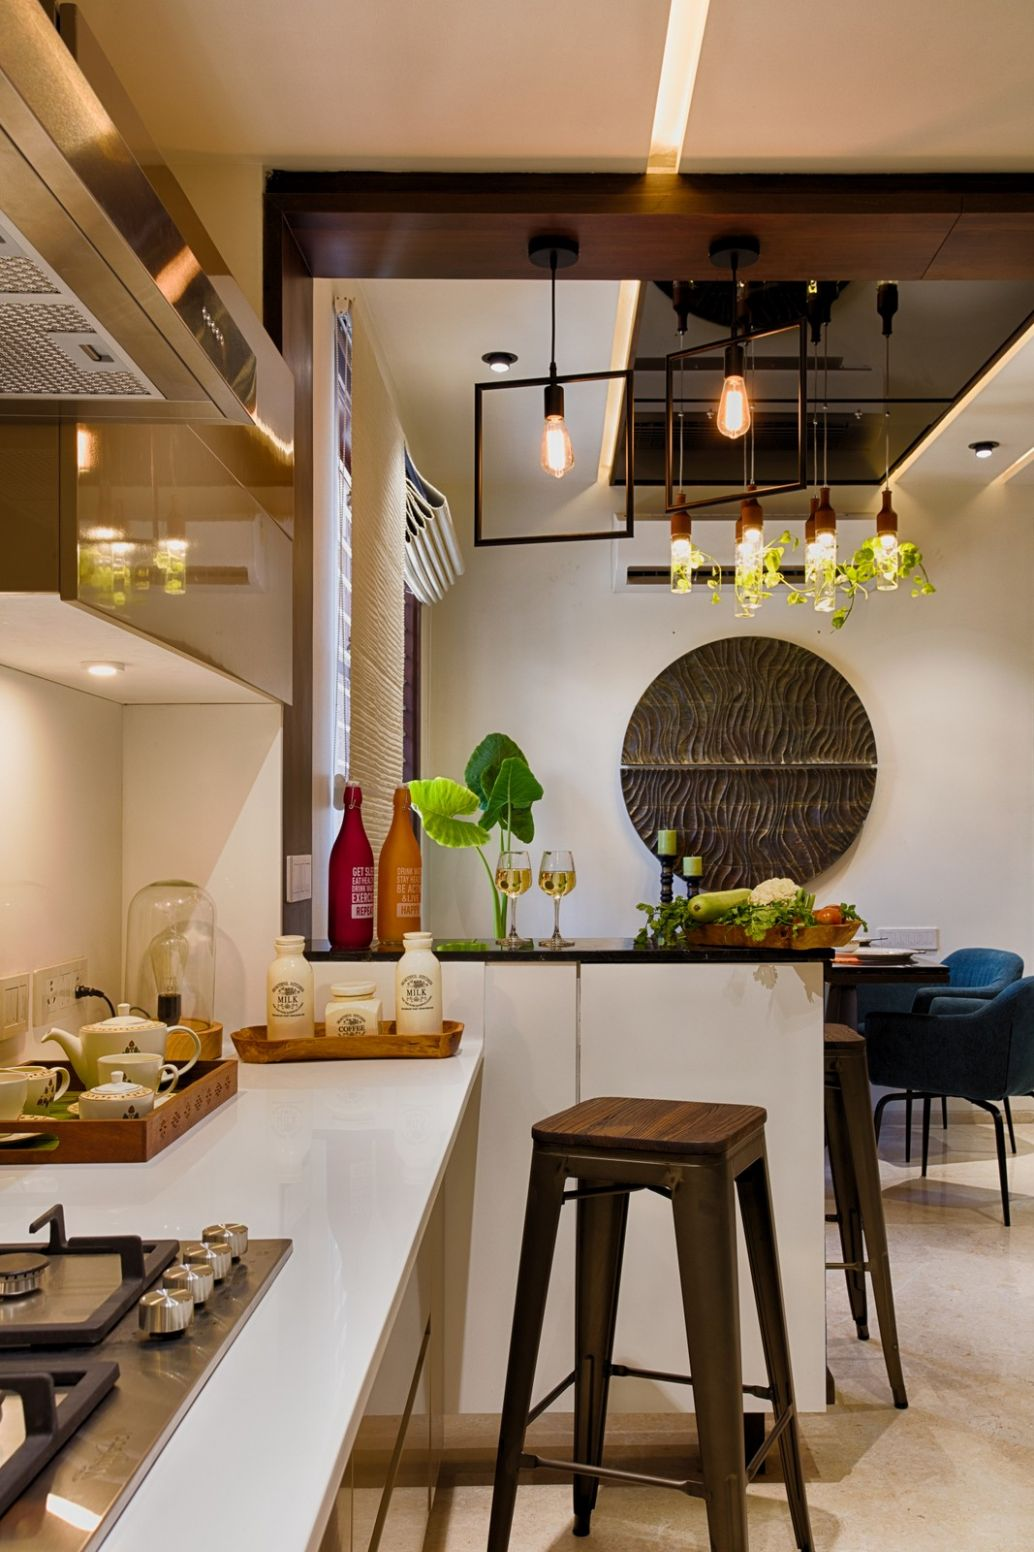 9+ Indian Kitchen Design Images from Real Homes - laundry room ideas india